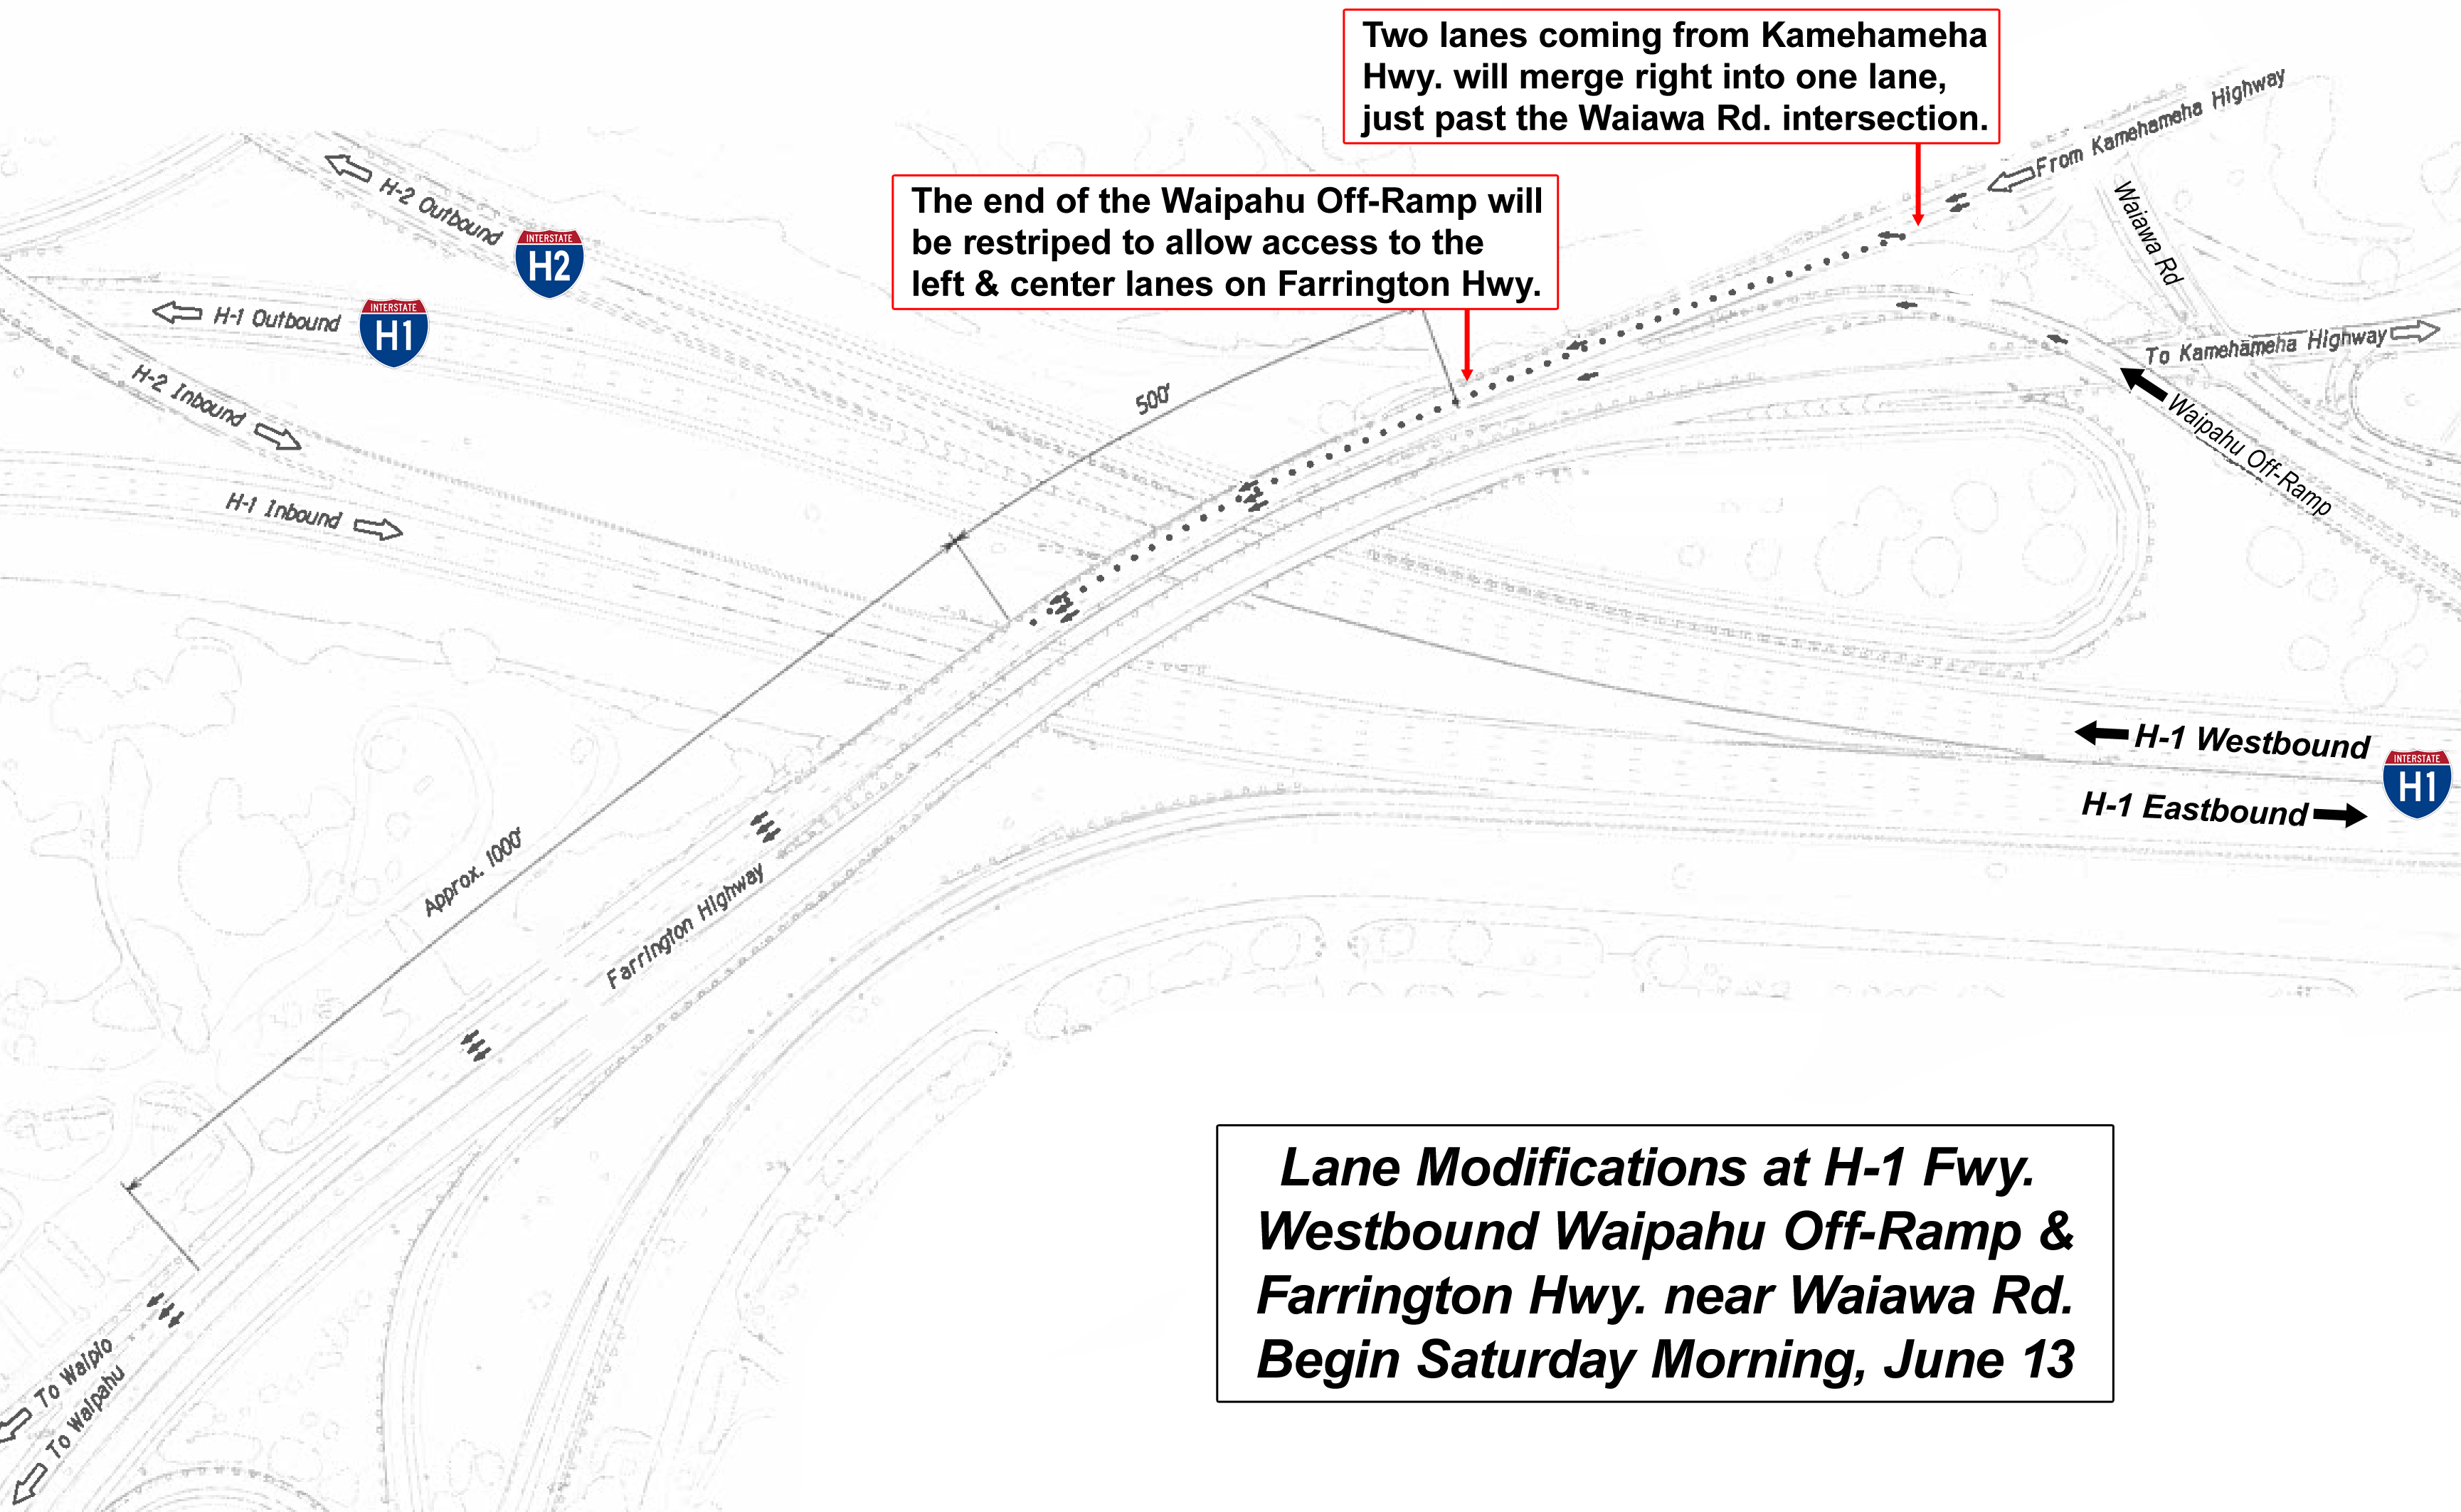 Highways Lane Pattern Modifications At H1 Fwy Westbound Waipahu